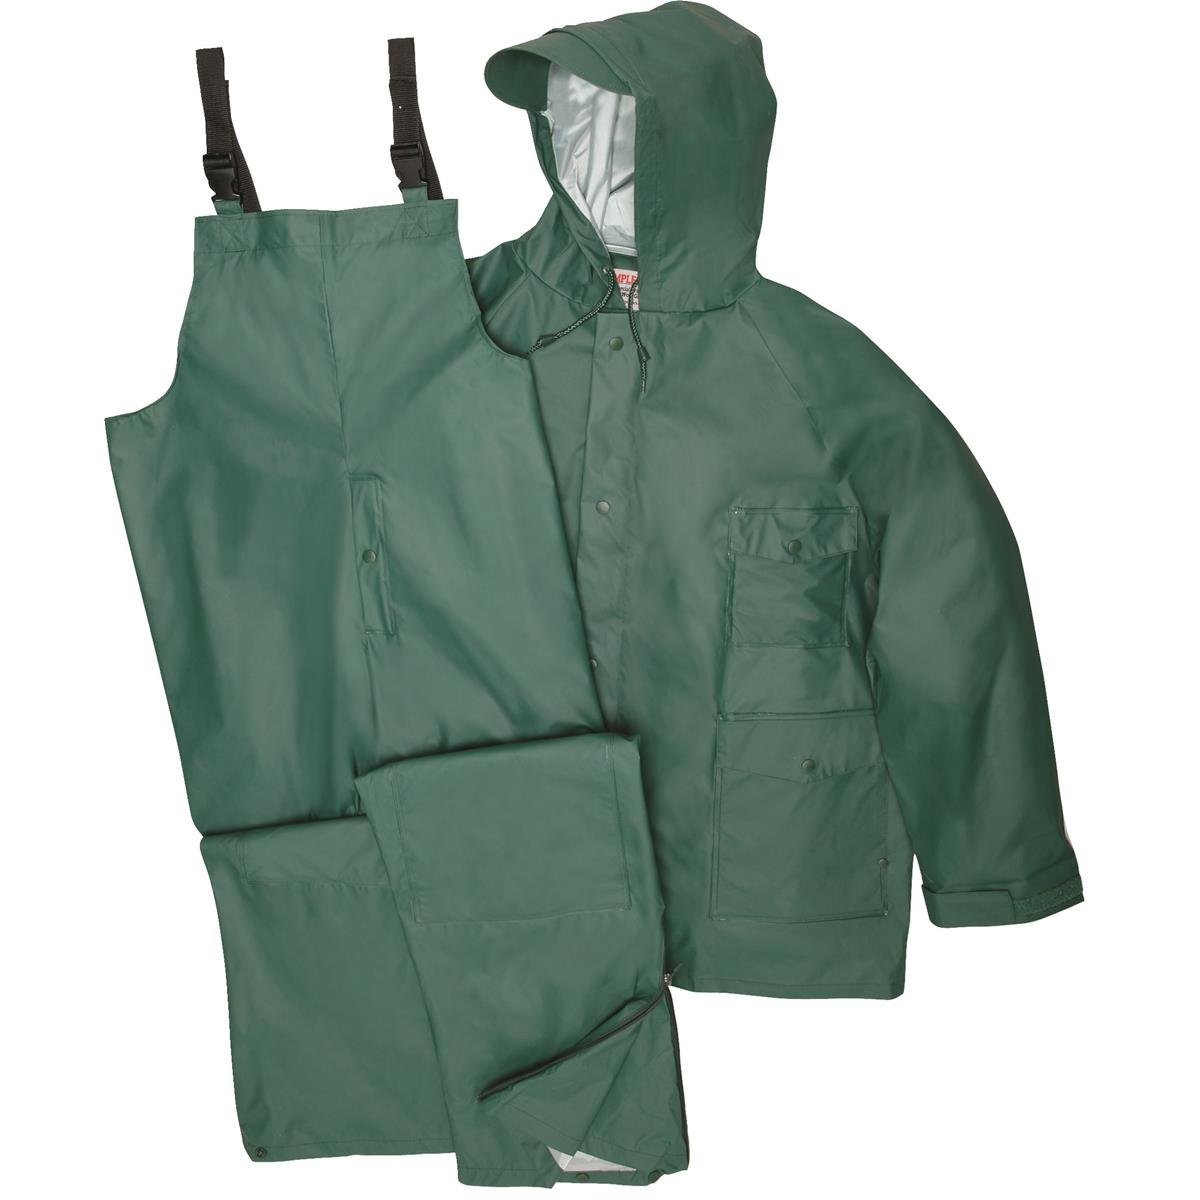 Gempler's GEMPLER'S Premium Quality Rain Jacket and Bib Overalls Waterproof Rain Suit, Green, Size Large by Gempler's